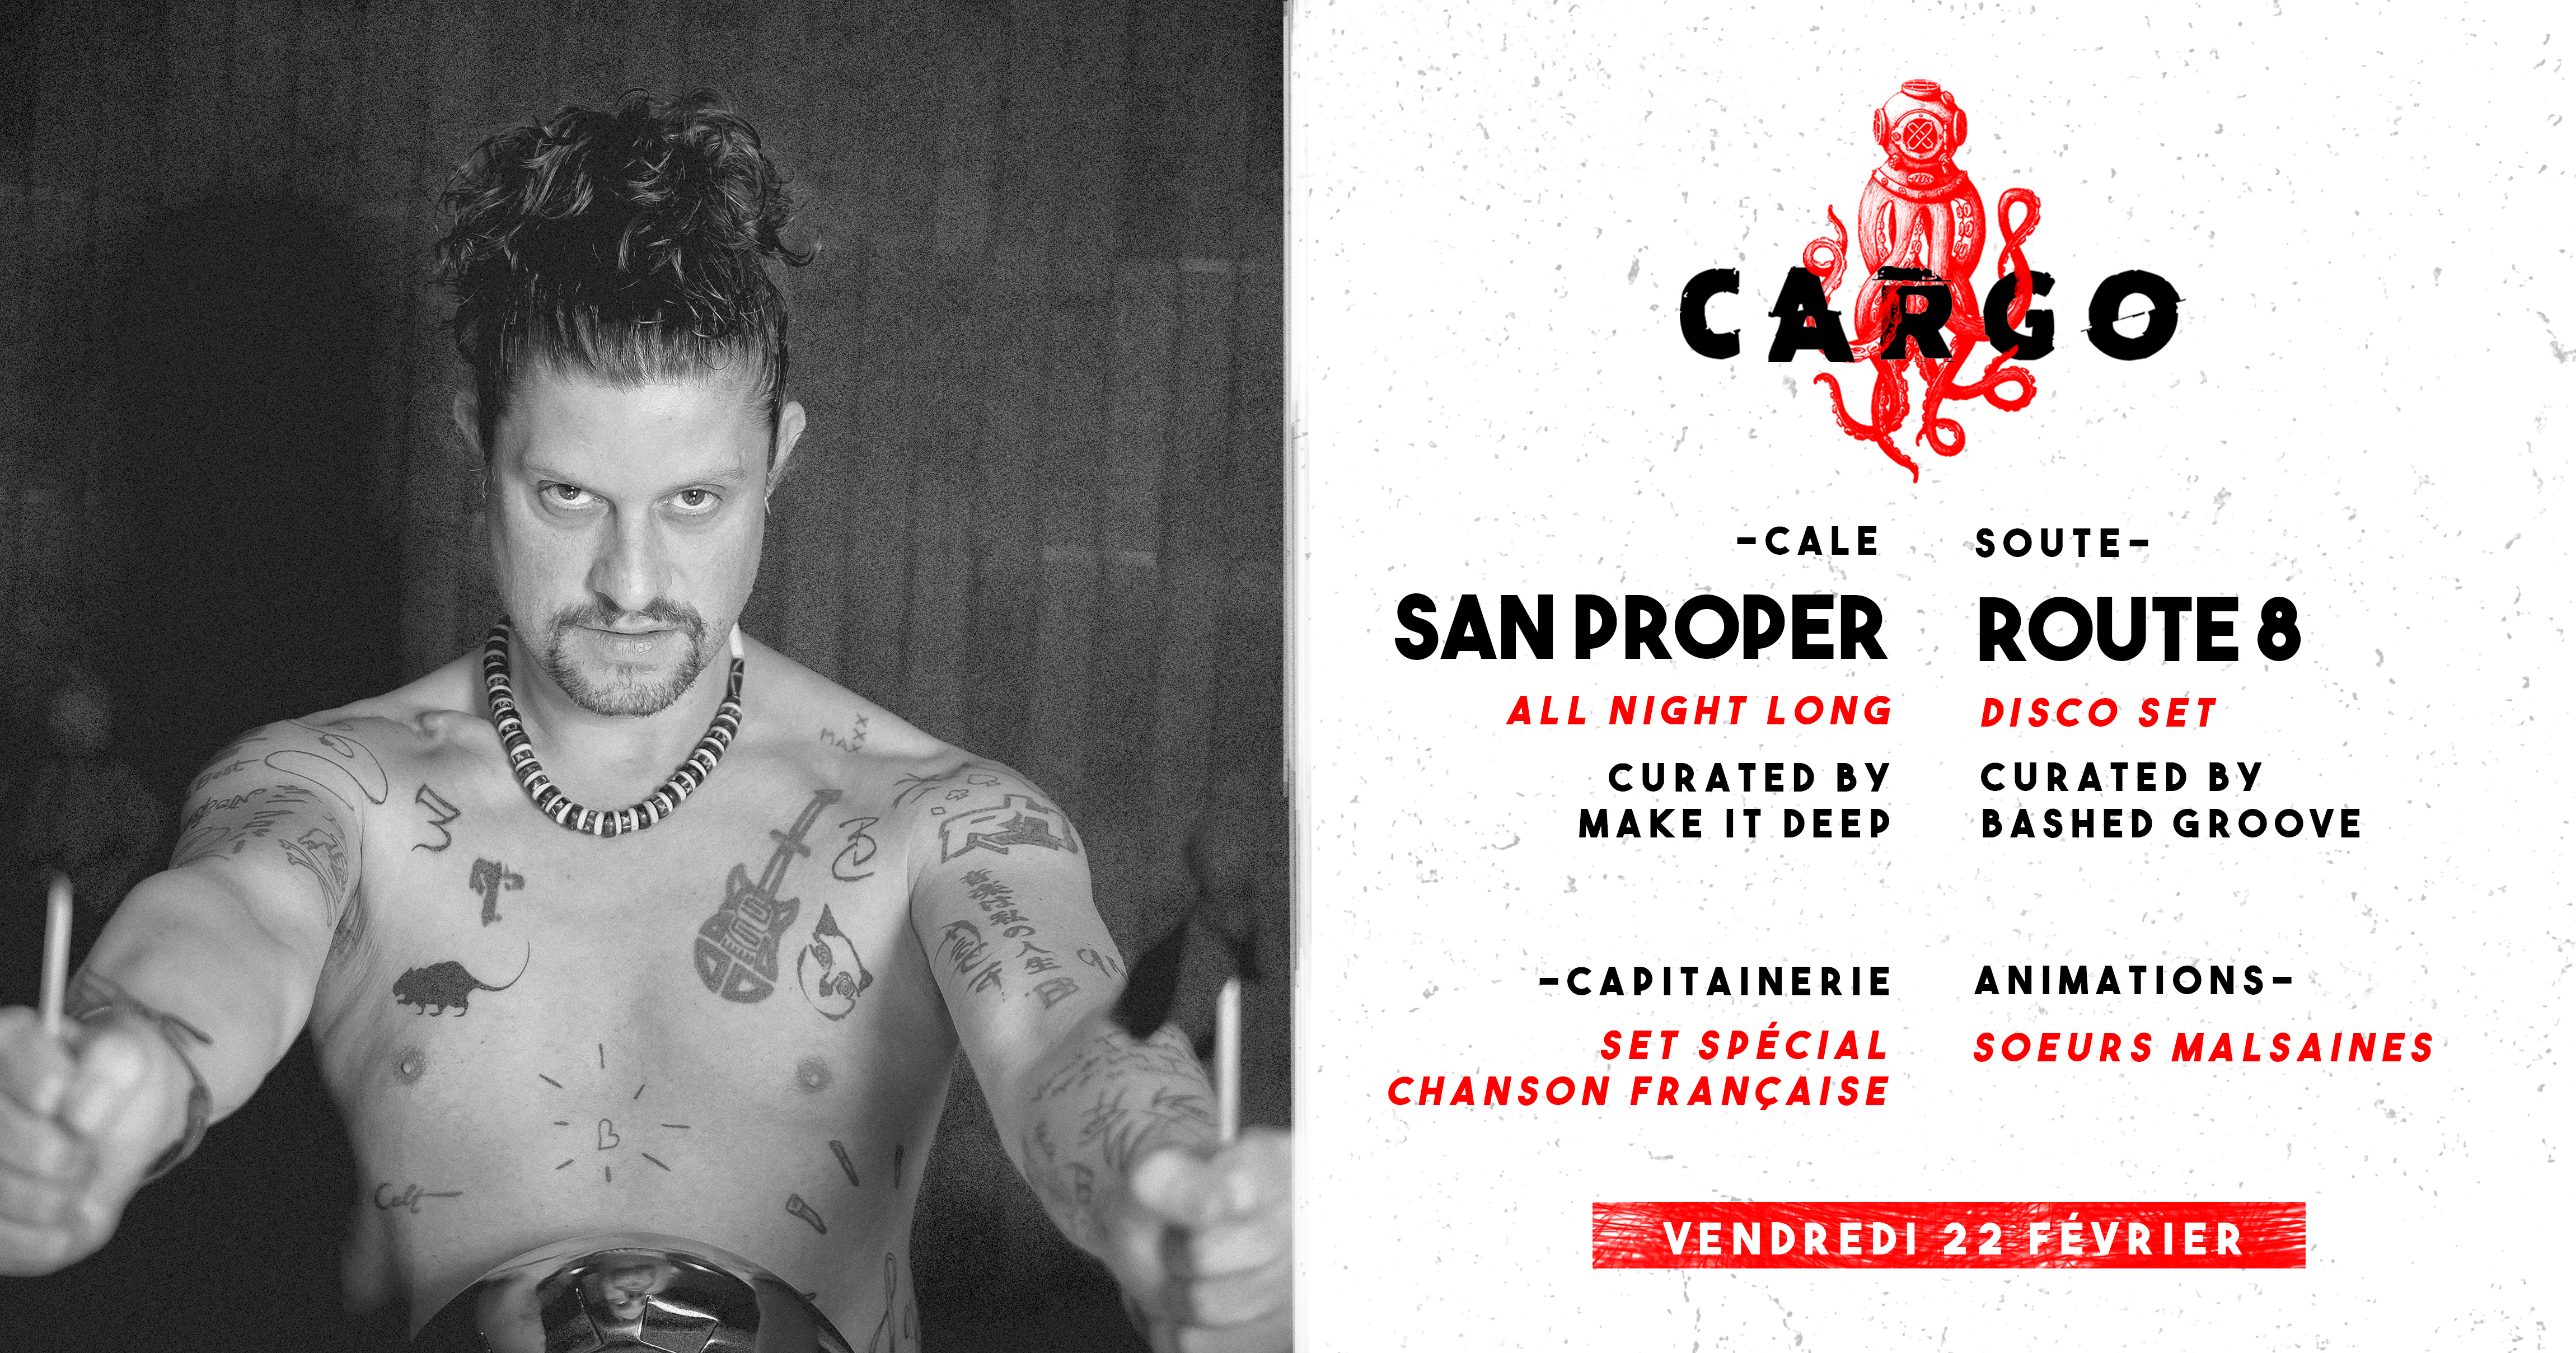 CARGØ : San Proper all night long / Route 8 disco set / Make it Deep & Bashed Groove